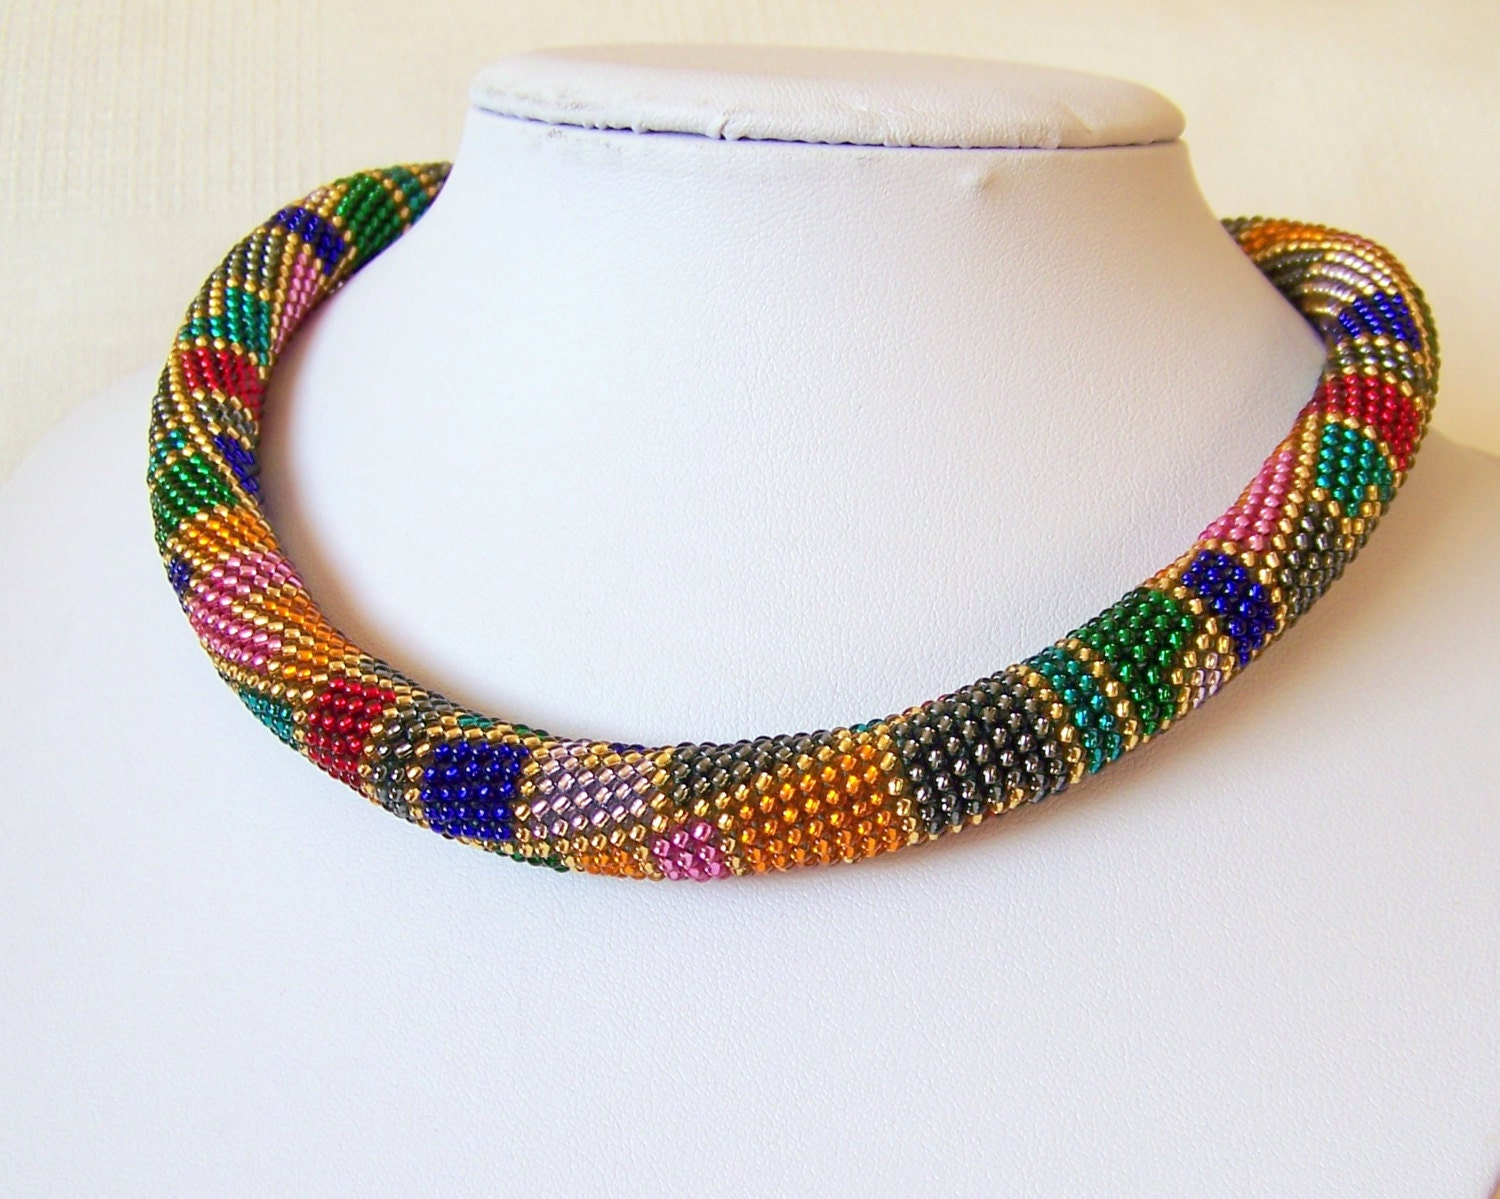 Beaded crochet rope necklace Beaded necklace Handmade